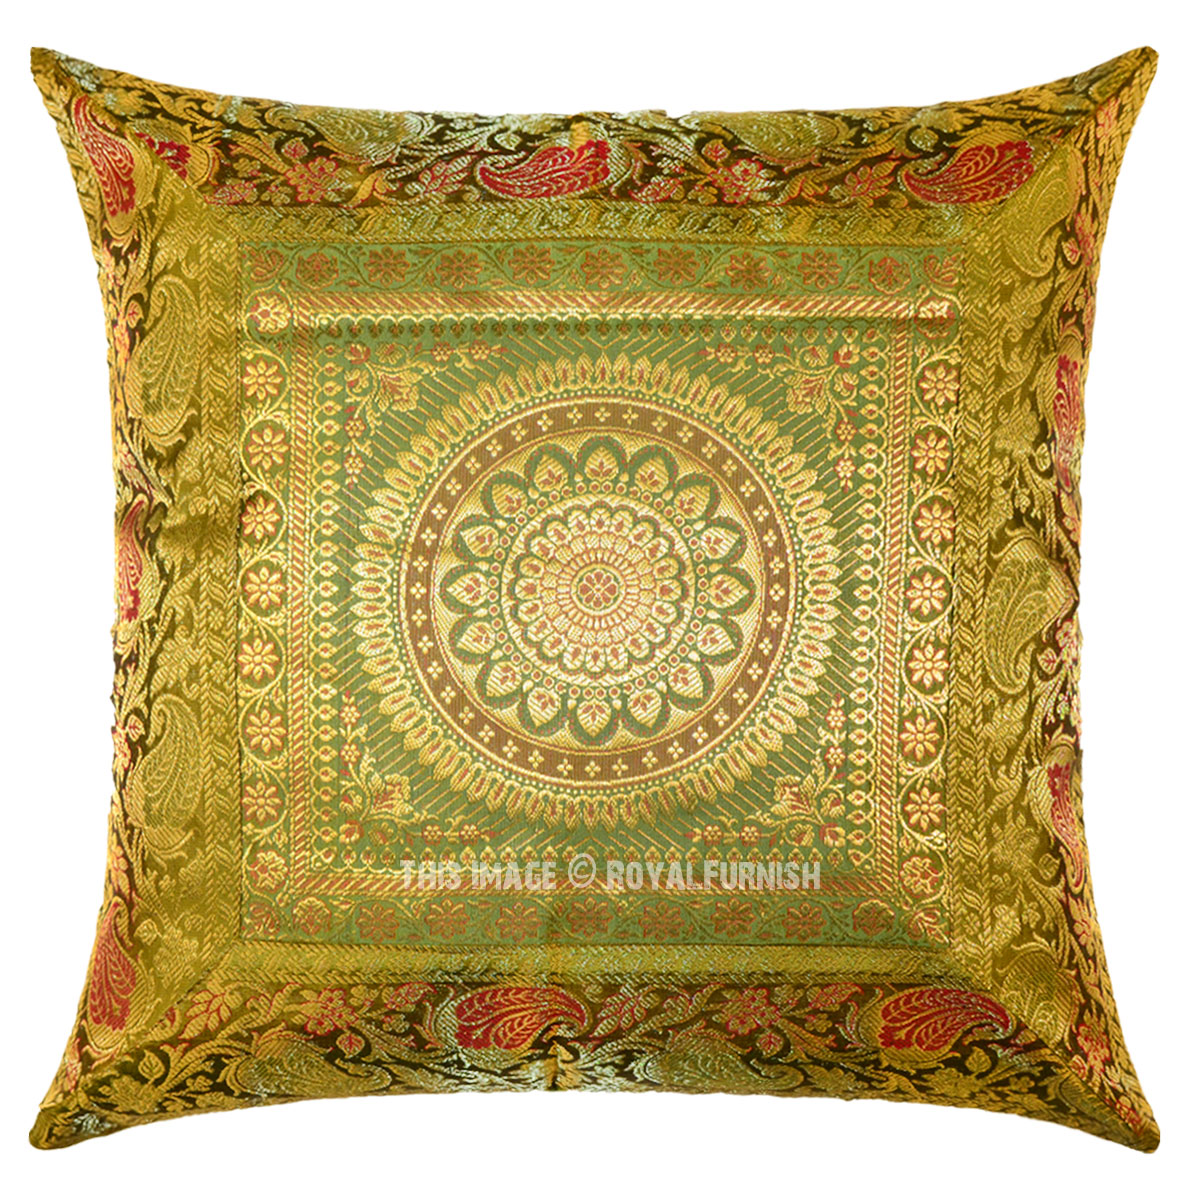 Green Silk Throw Pillow : Green Floral Medallion Circle 16X16 Decorative Silk Throw Pillow Case 16X16 - RoyalFurnish.com